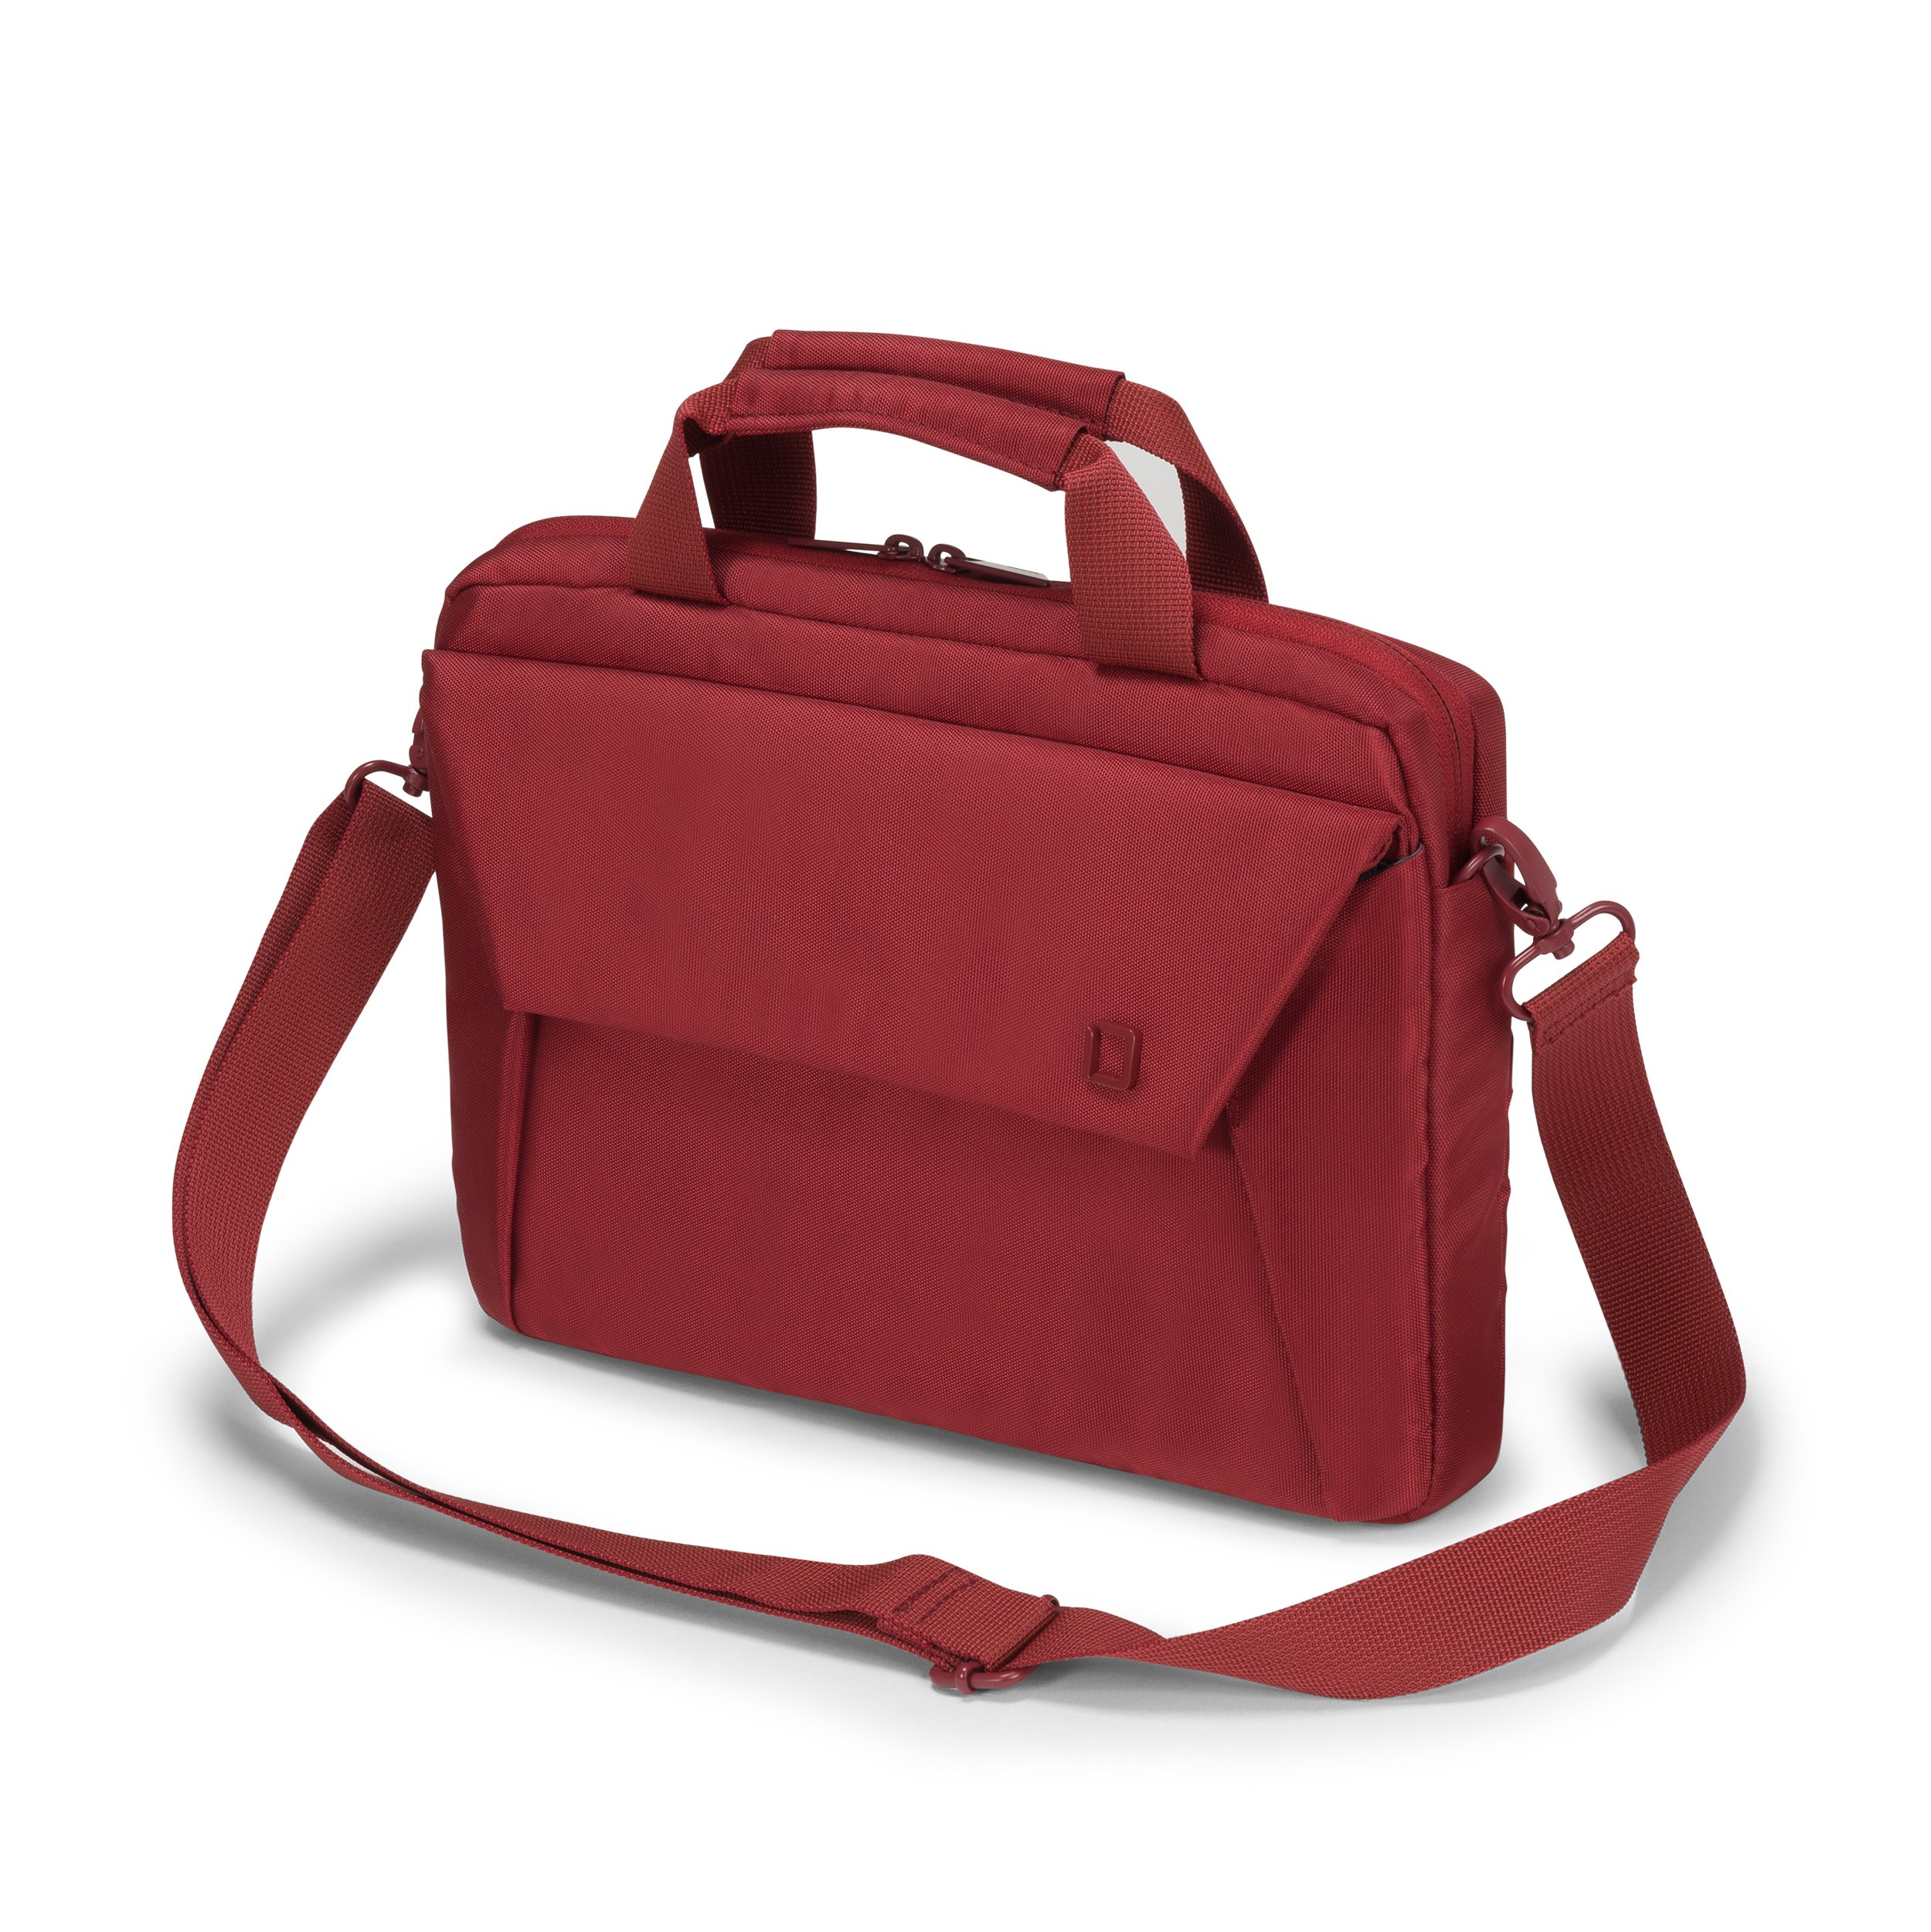 Dicota D31213 11.6 Briefcase Red notebook case - notebook cases (29.5 cm (11.6), Briefcase, Red